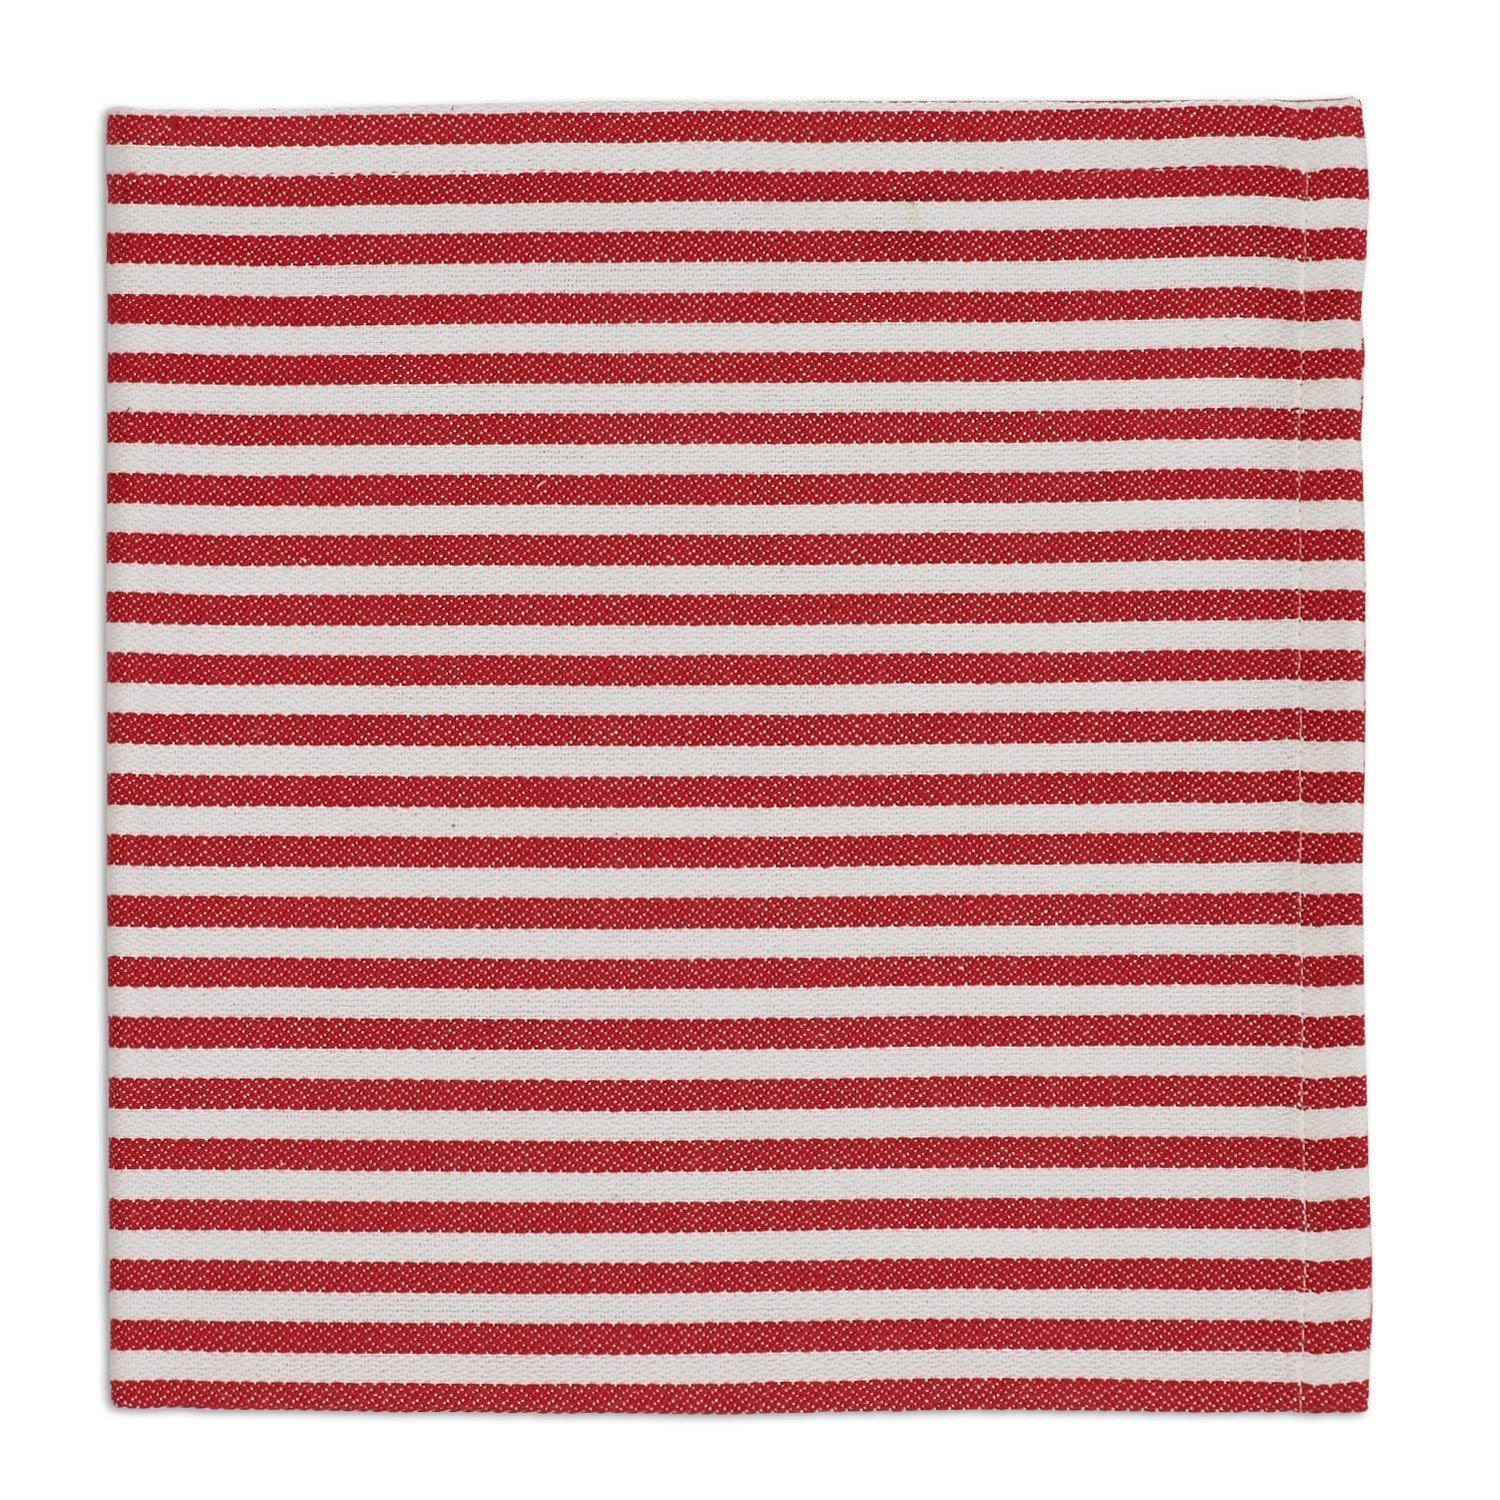 Sleigh Ride Stripe Napkin (Set of 4) - Cece & Me - Home and Gifts